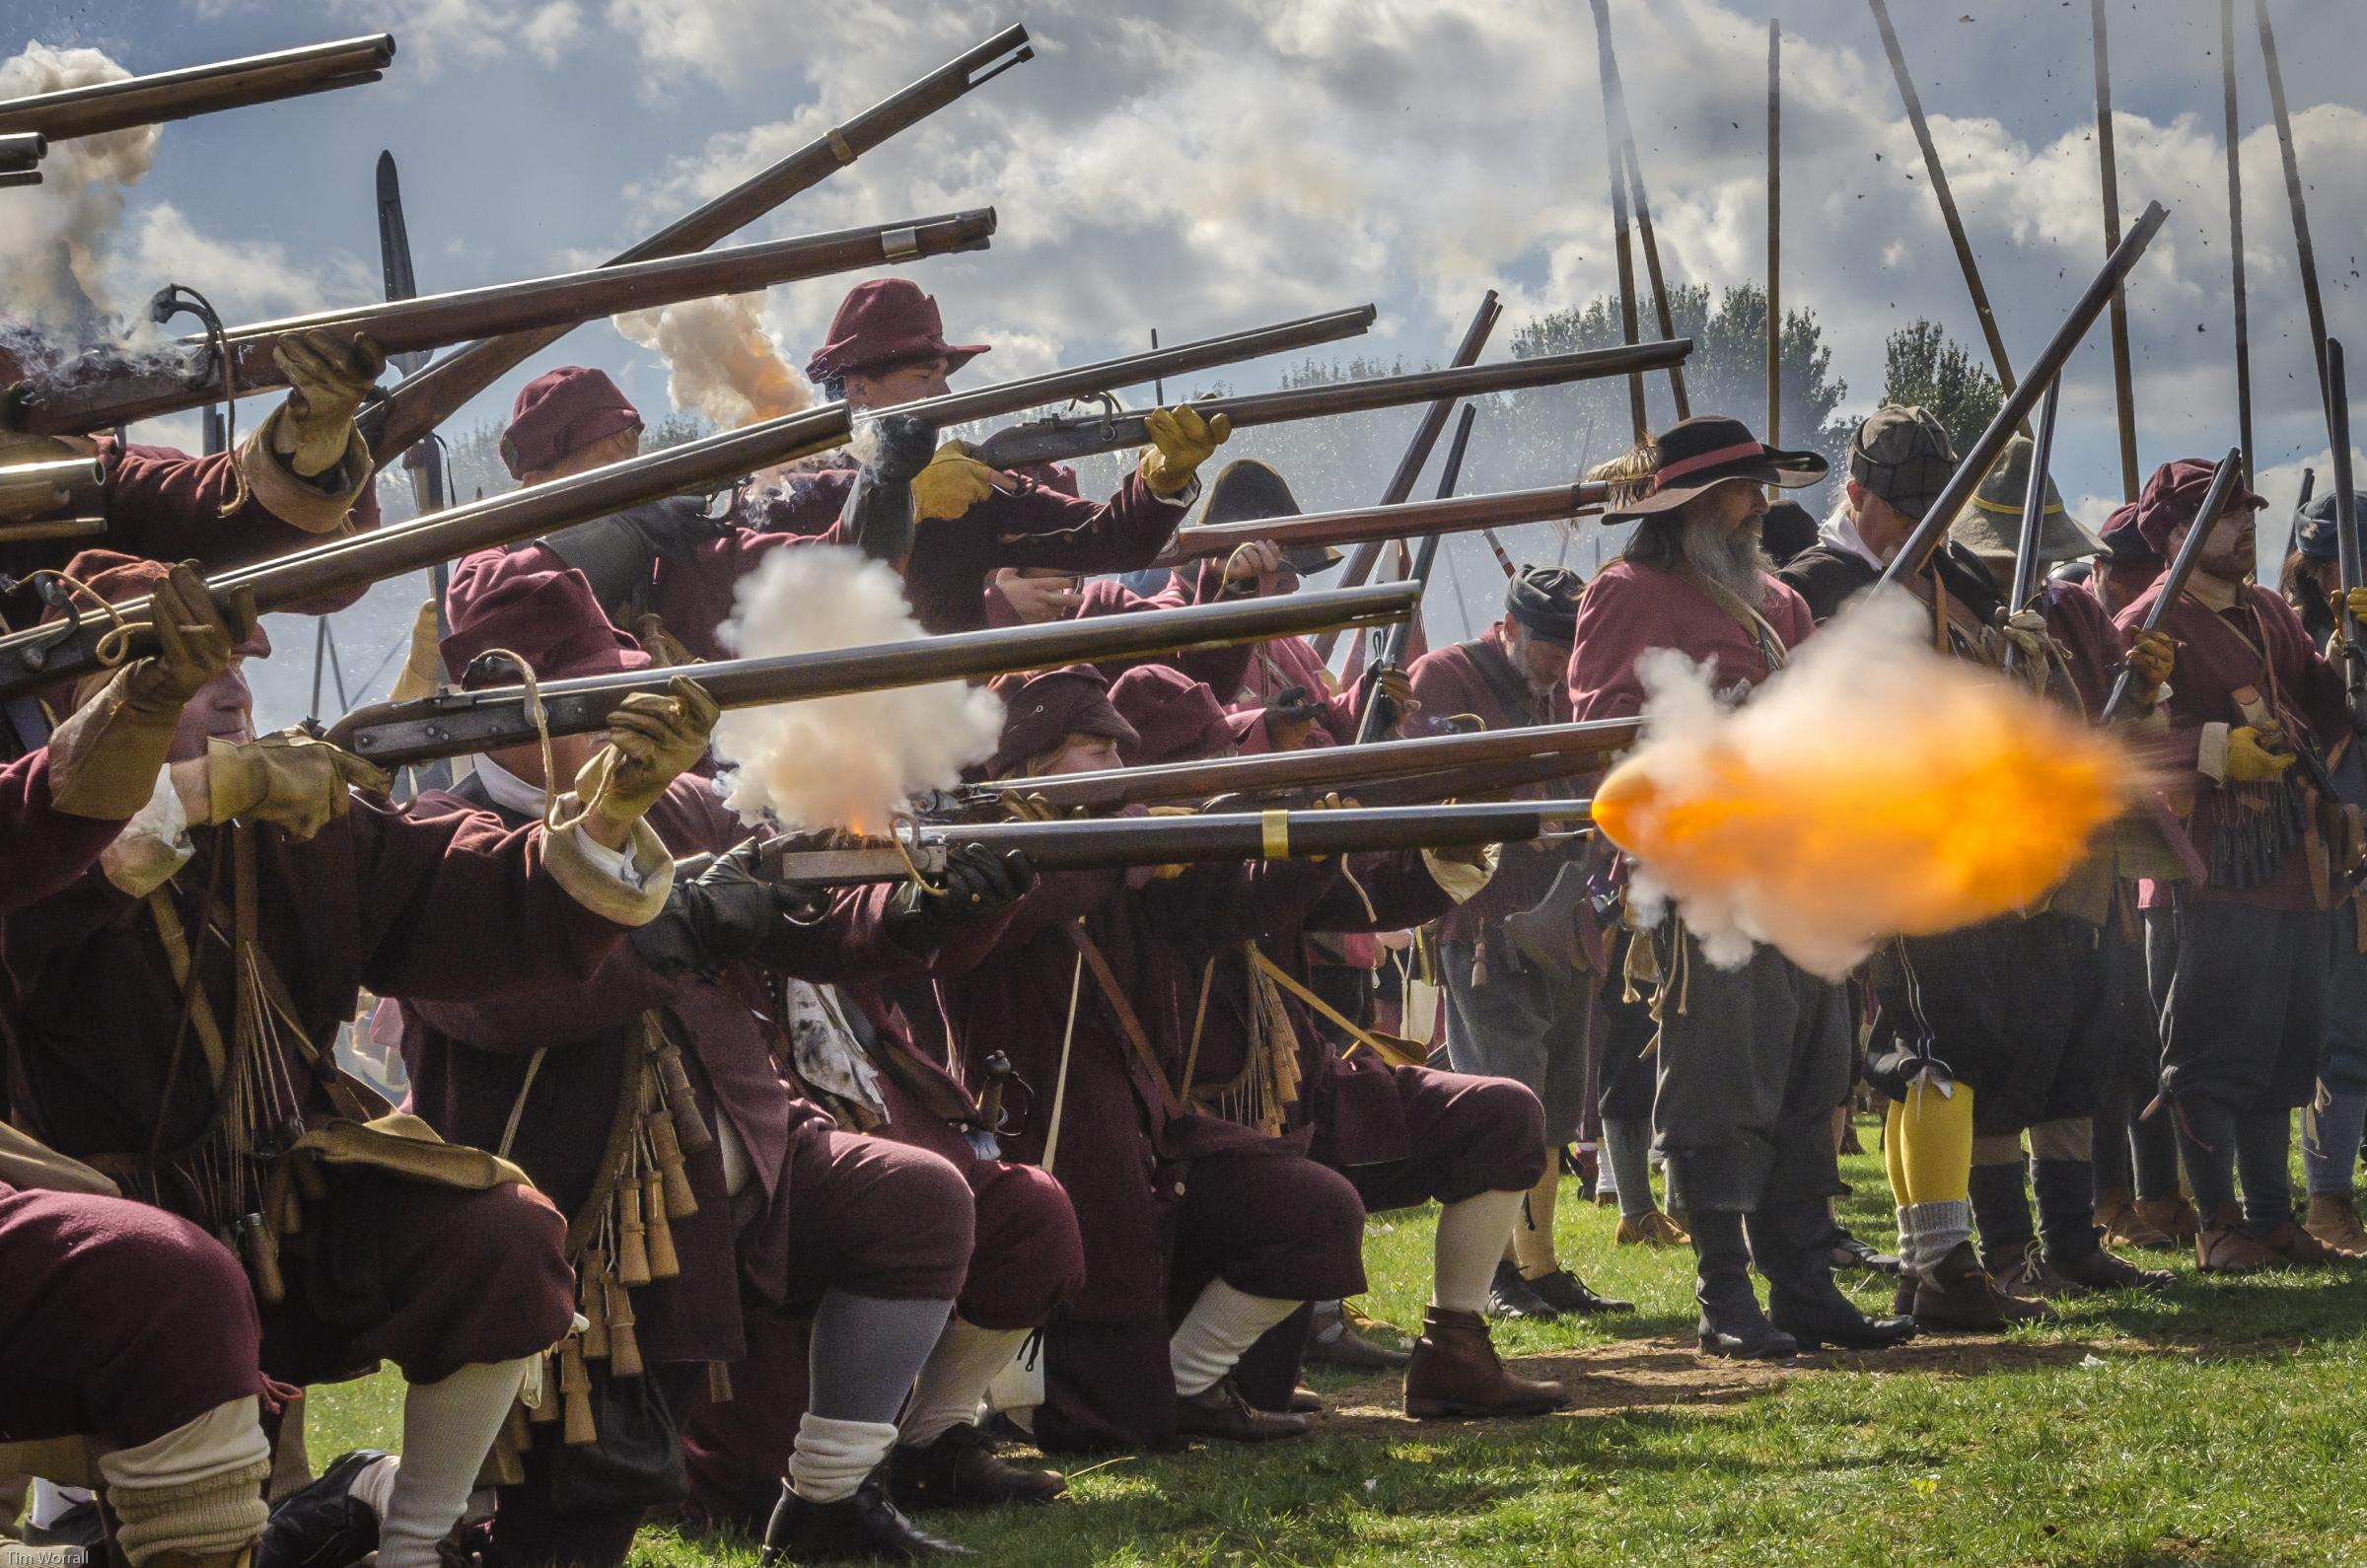 Civil War re-enactment heads to Ford Park